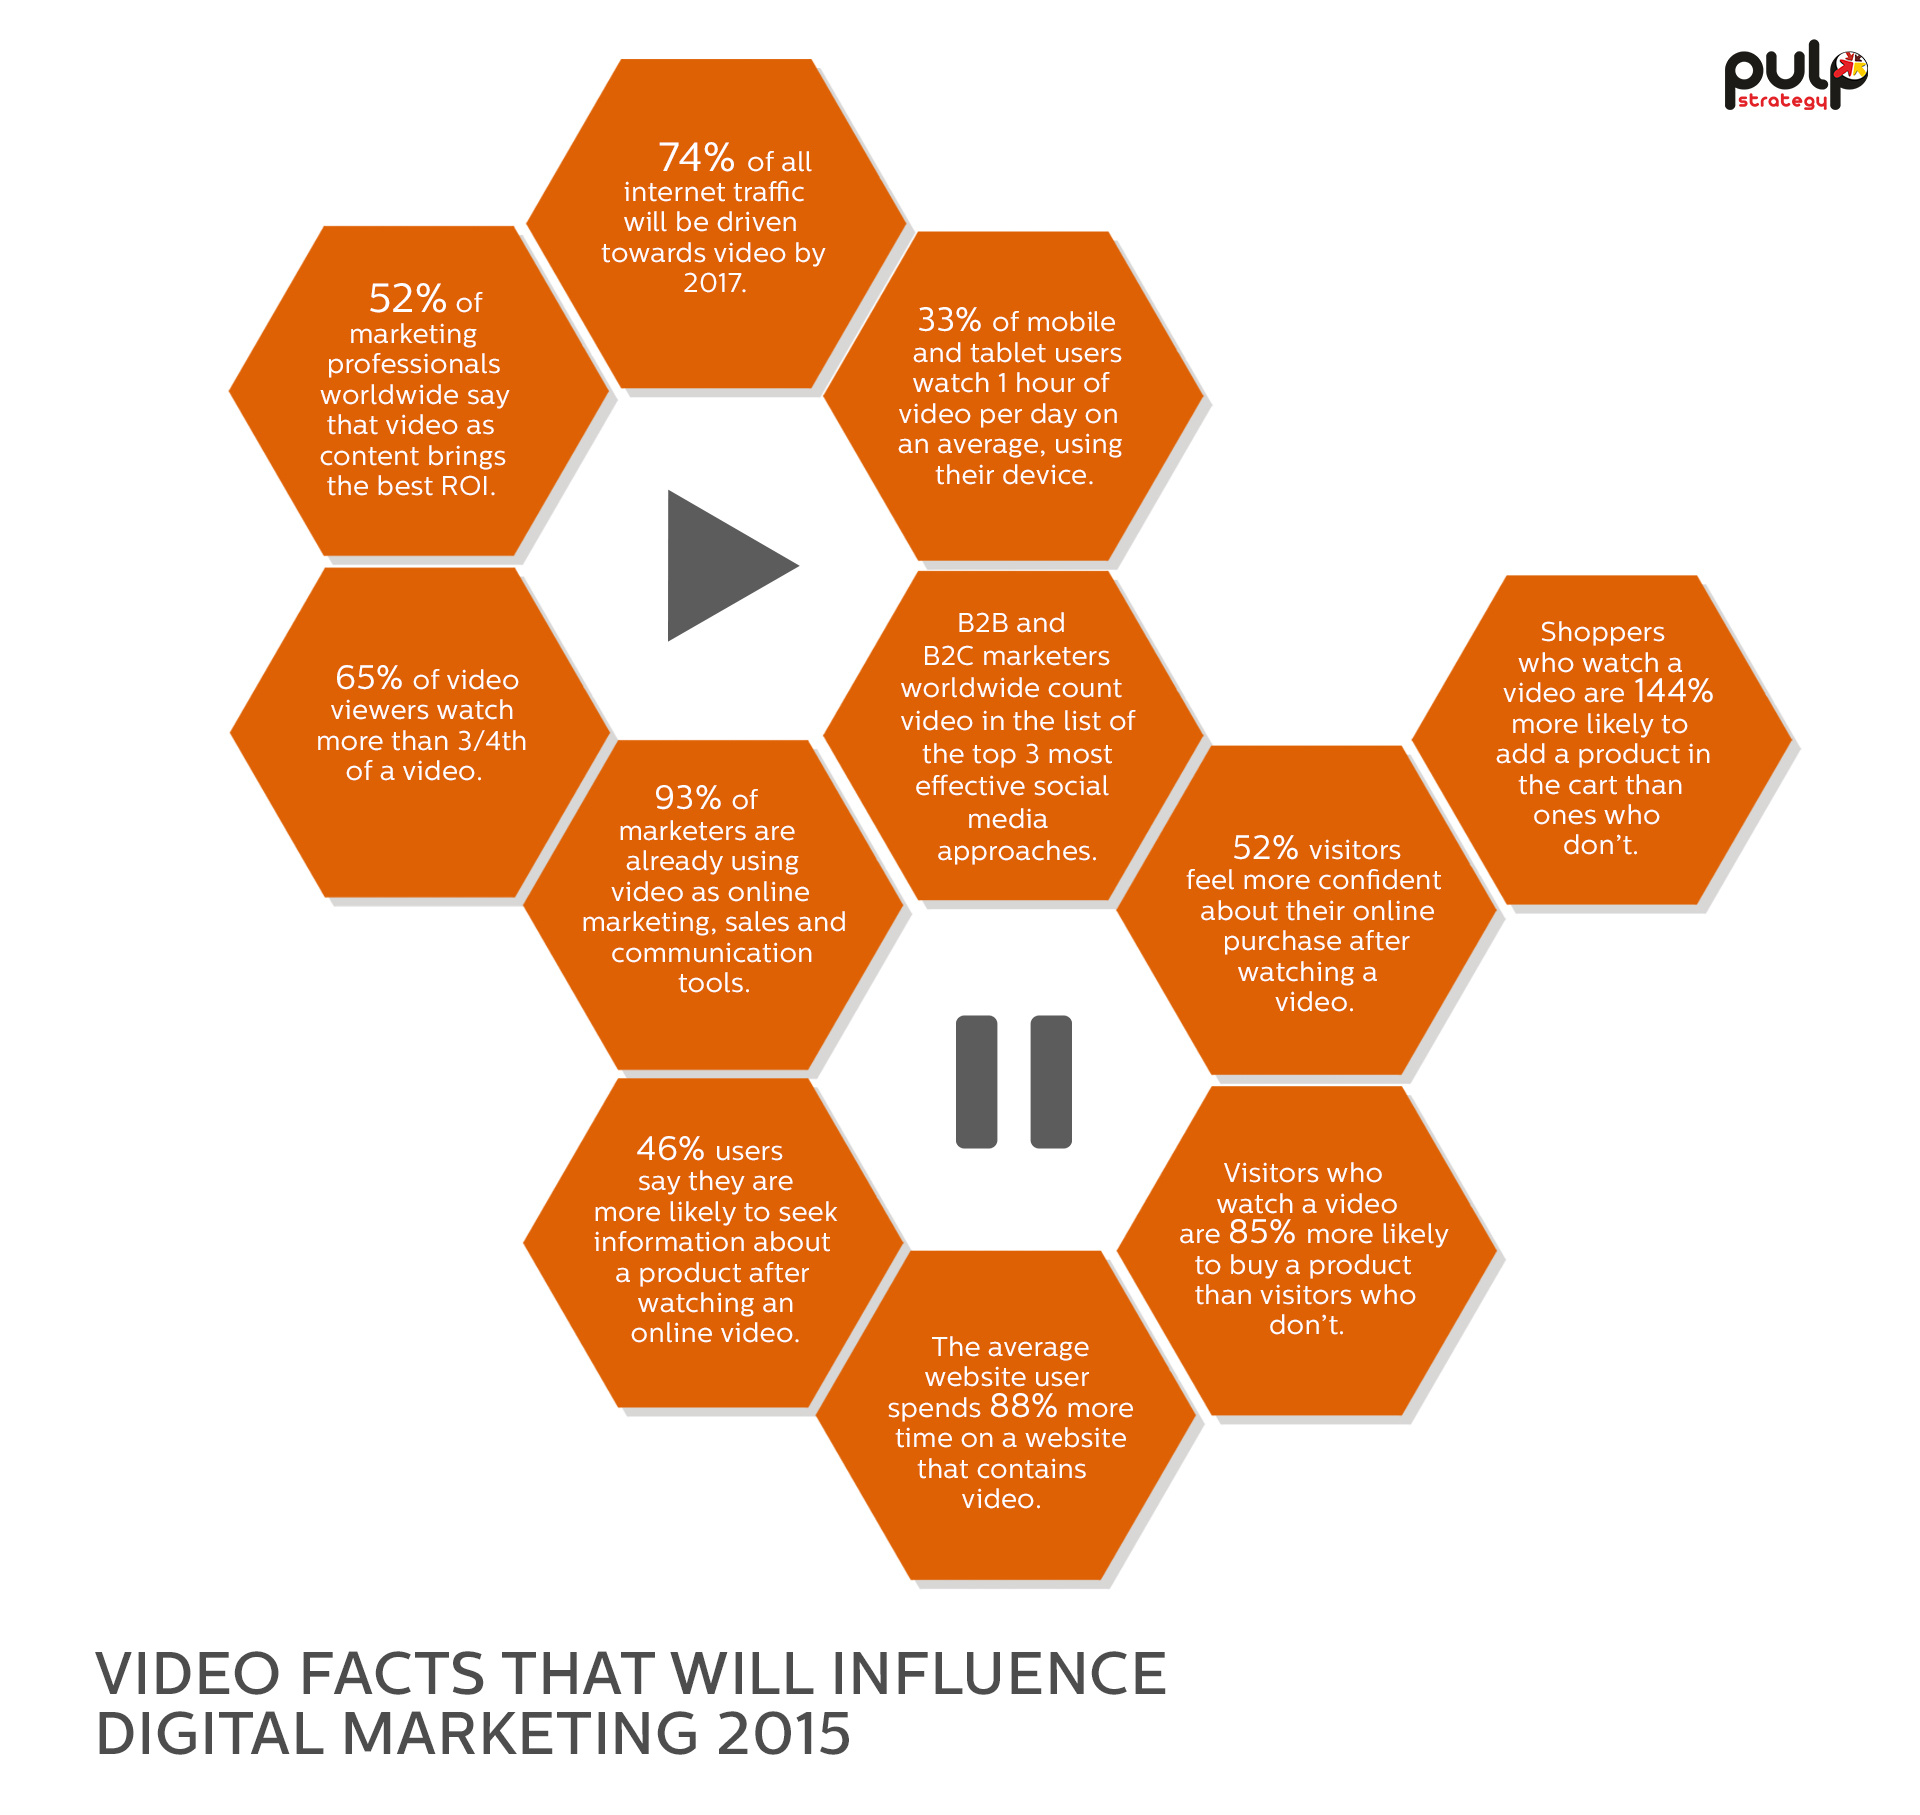 Video Facts - Digital Marketing Strategy 2015